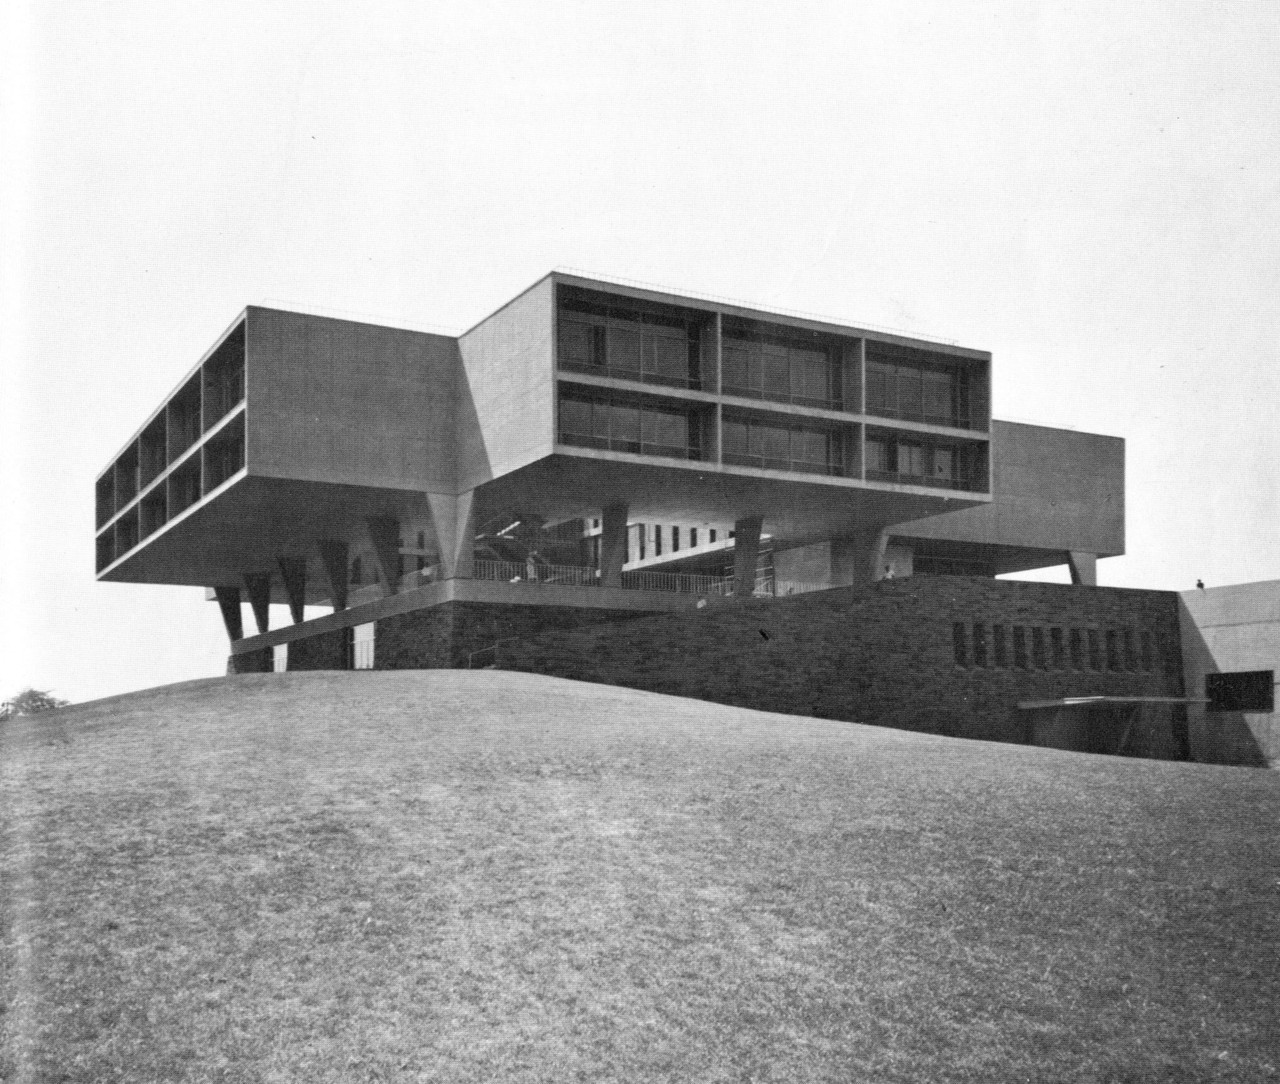 Photo of the War Memorial Center after it was built in 1957